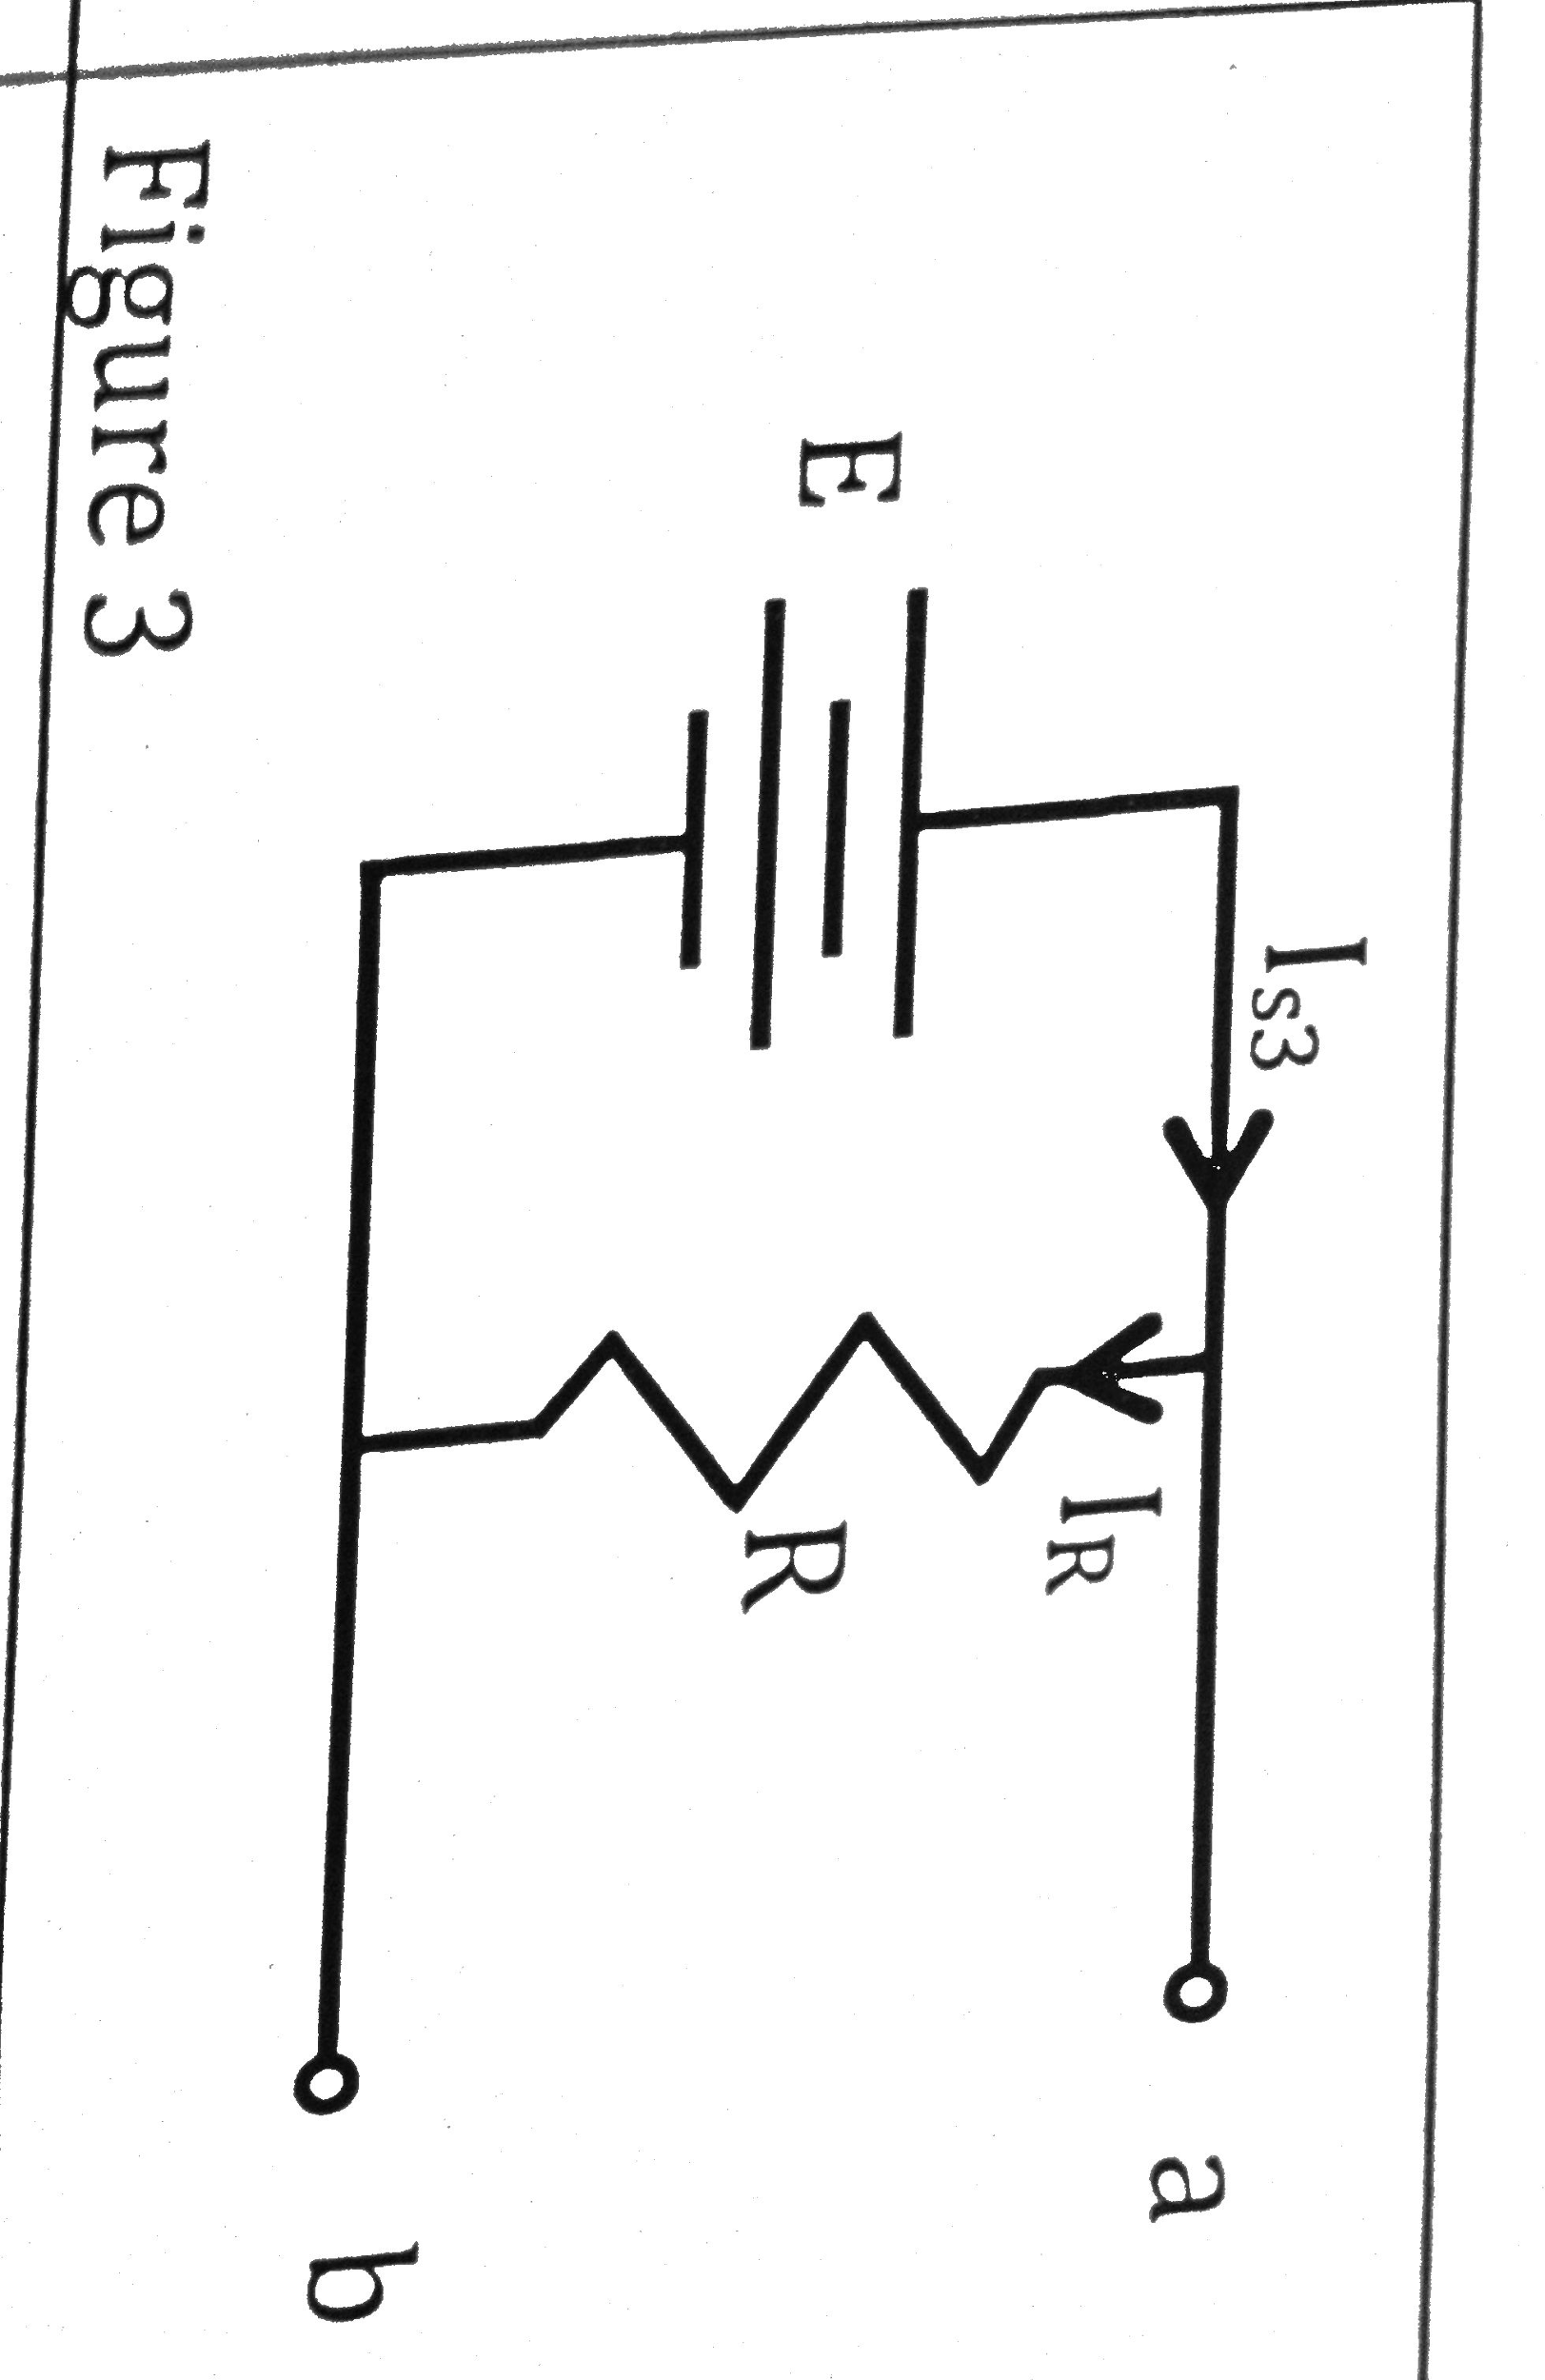 In Figure 3, E = +10V and R is unknown. What is Va